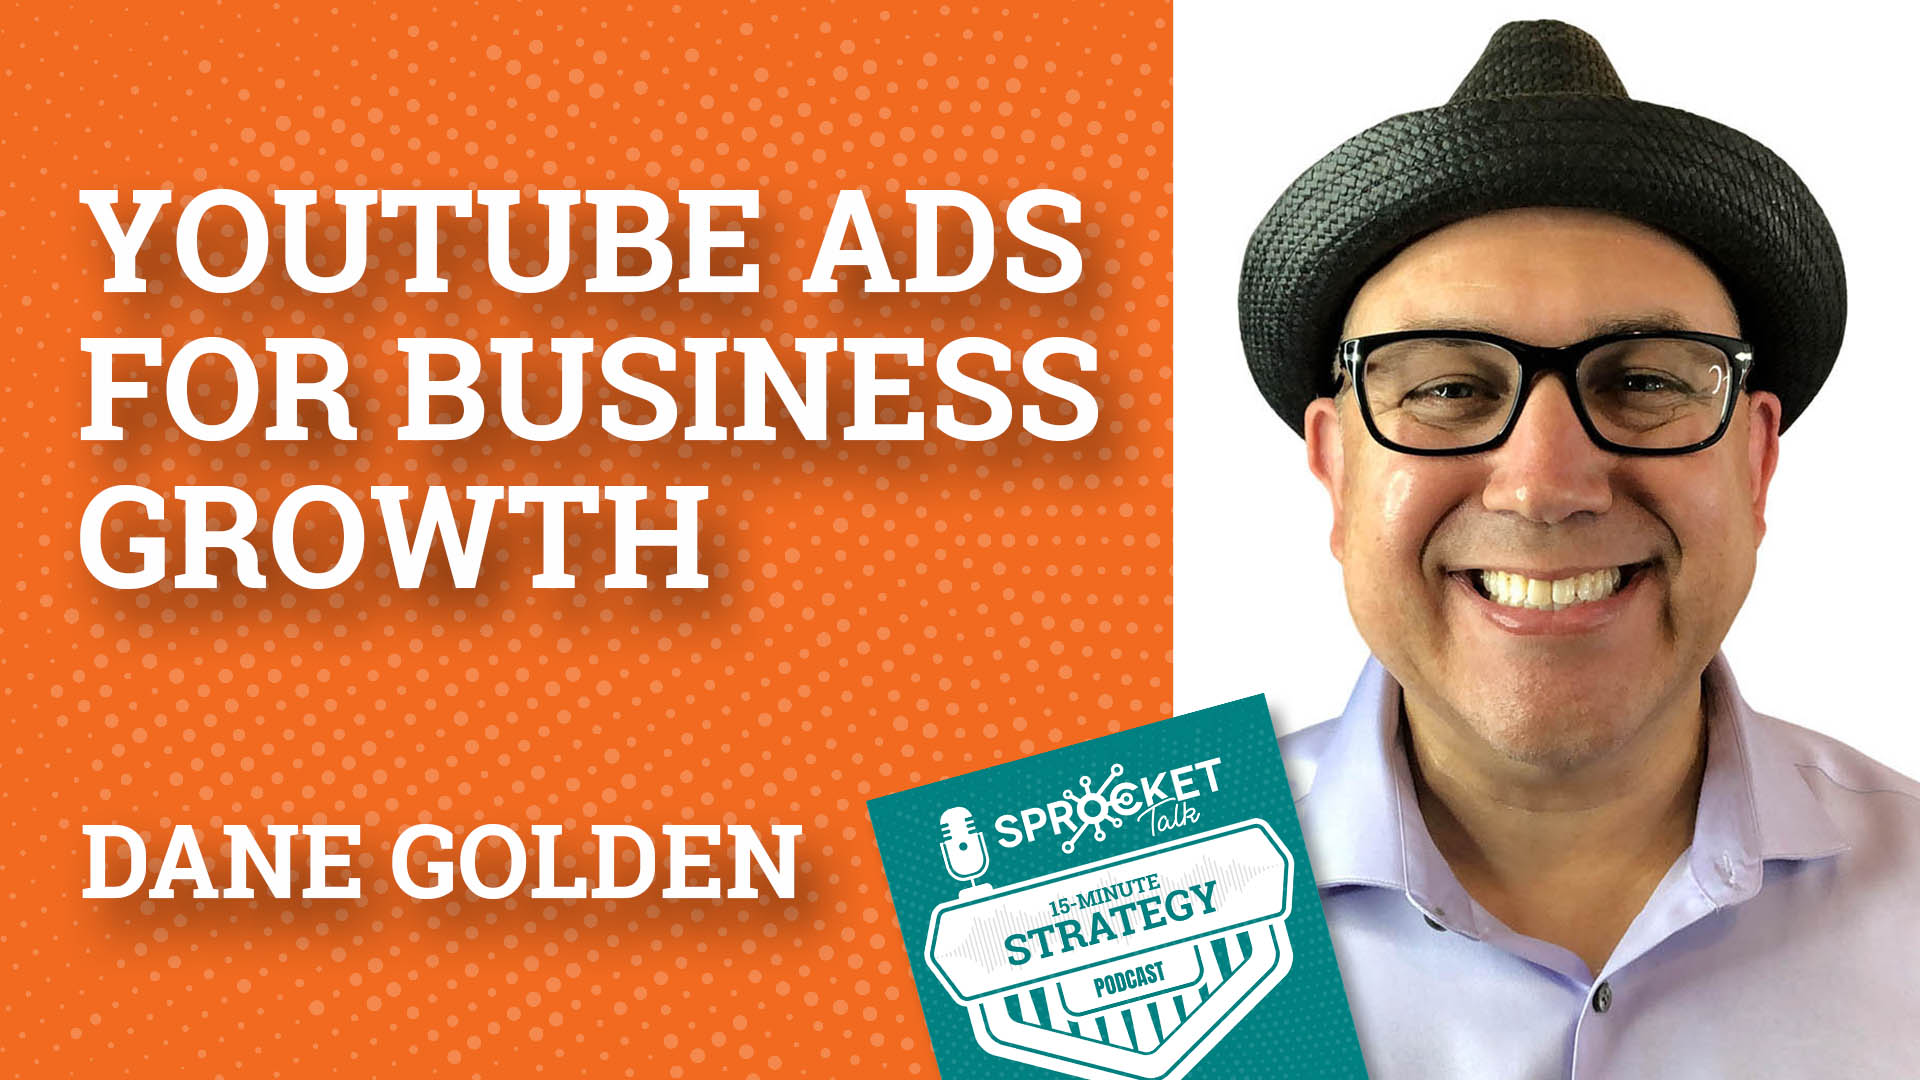 Dane Golden on YouTube Paid Ads for Business Growth | 15-Minute Strategy Podcast